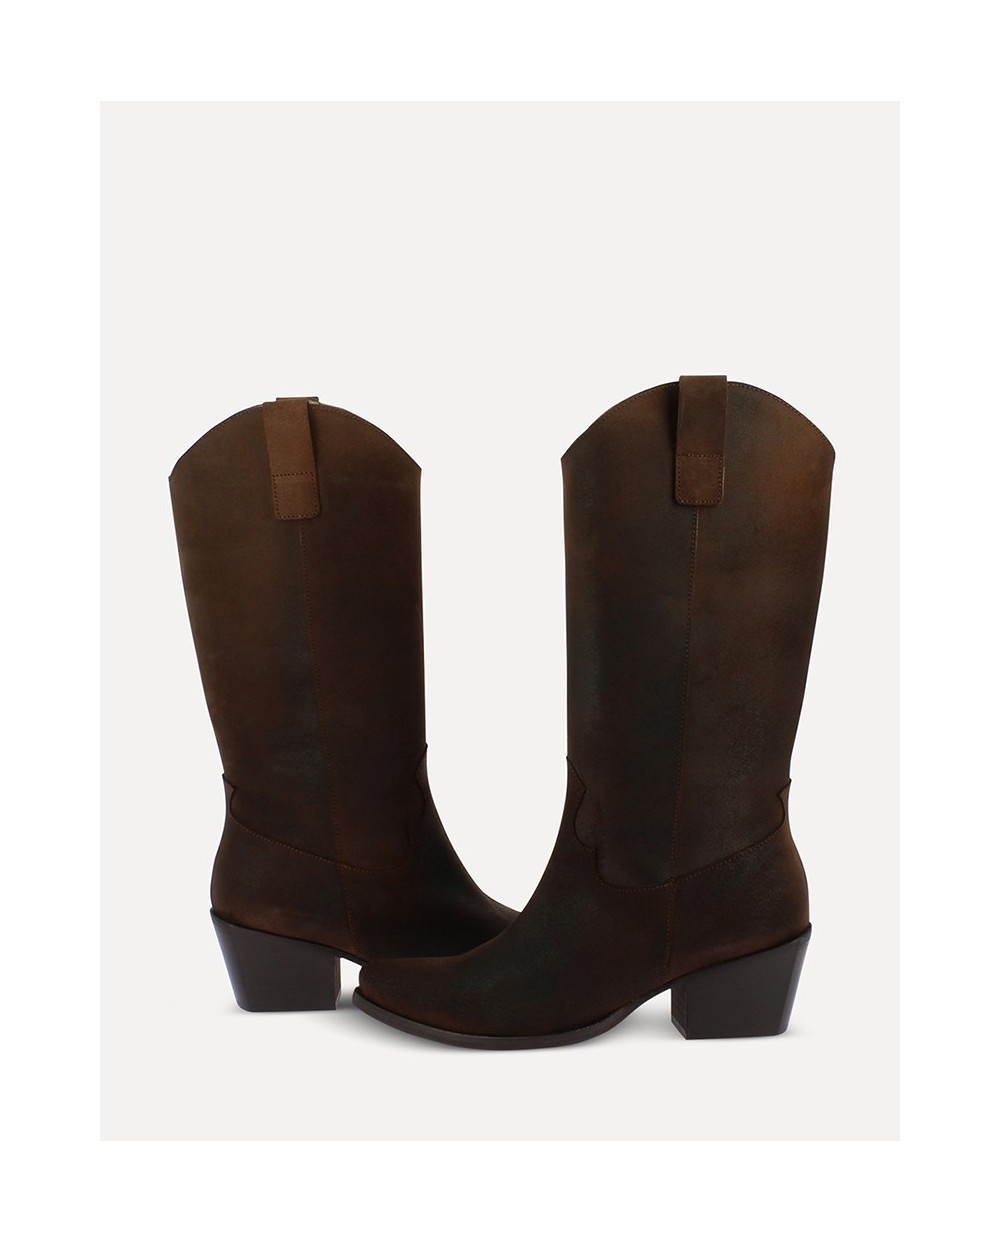 Suede leather Mid/calf ankle boot